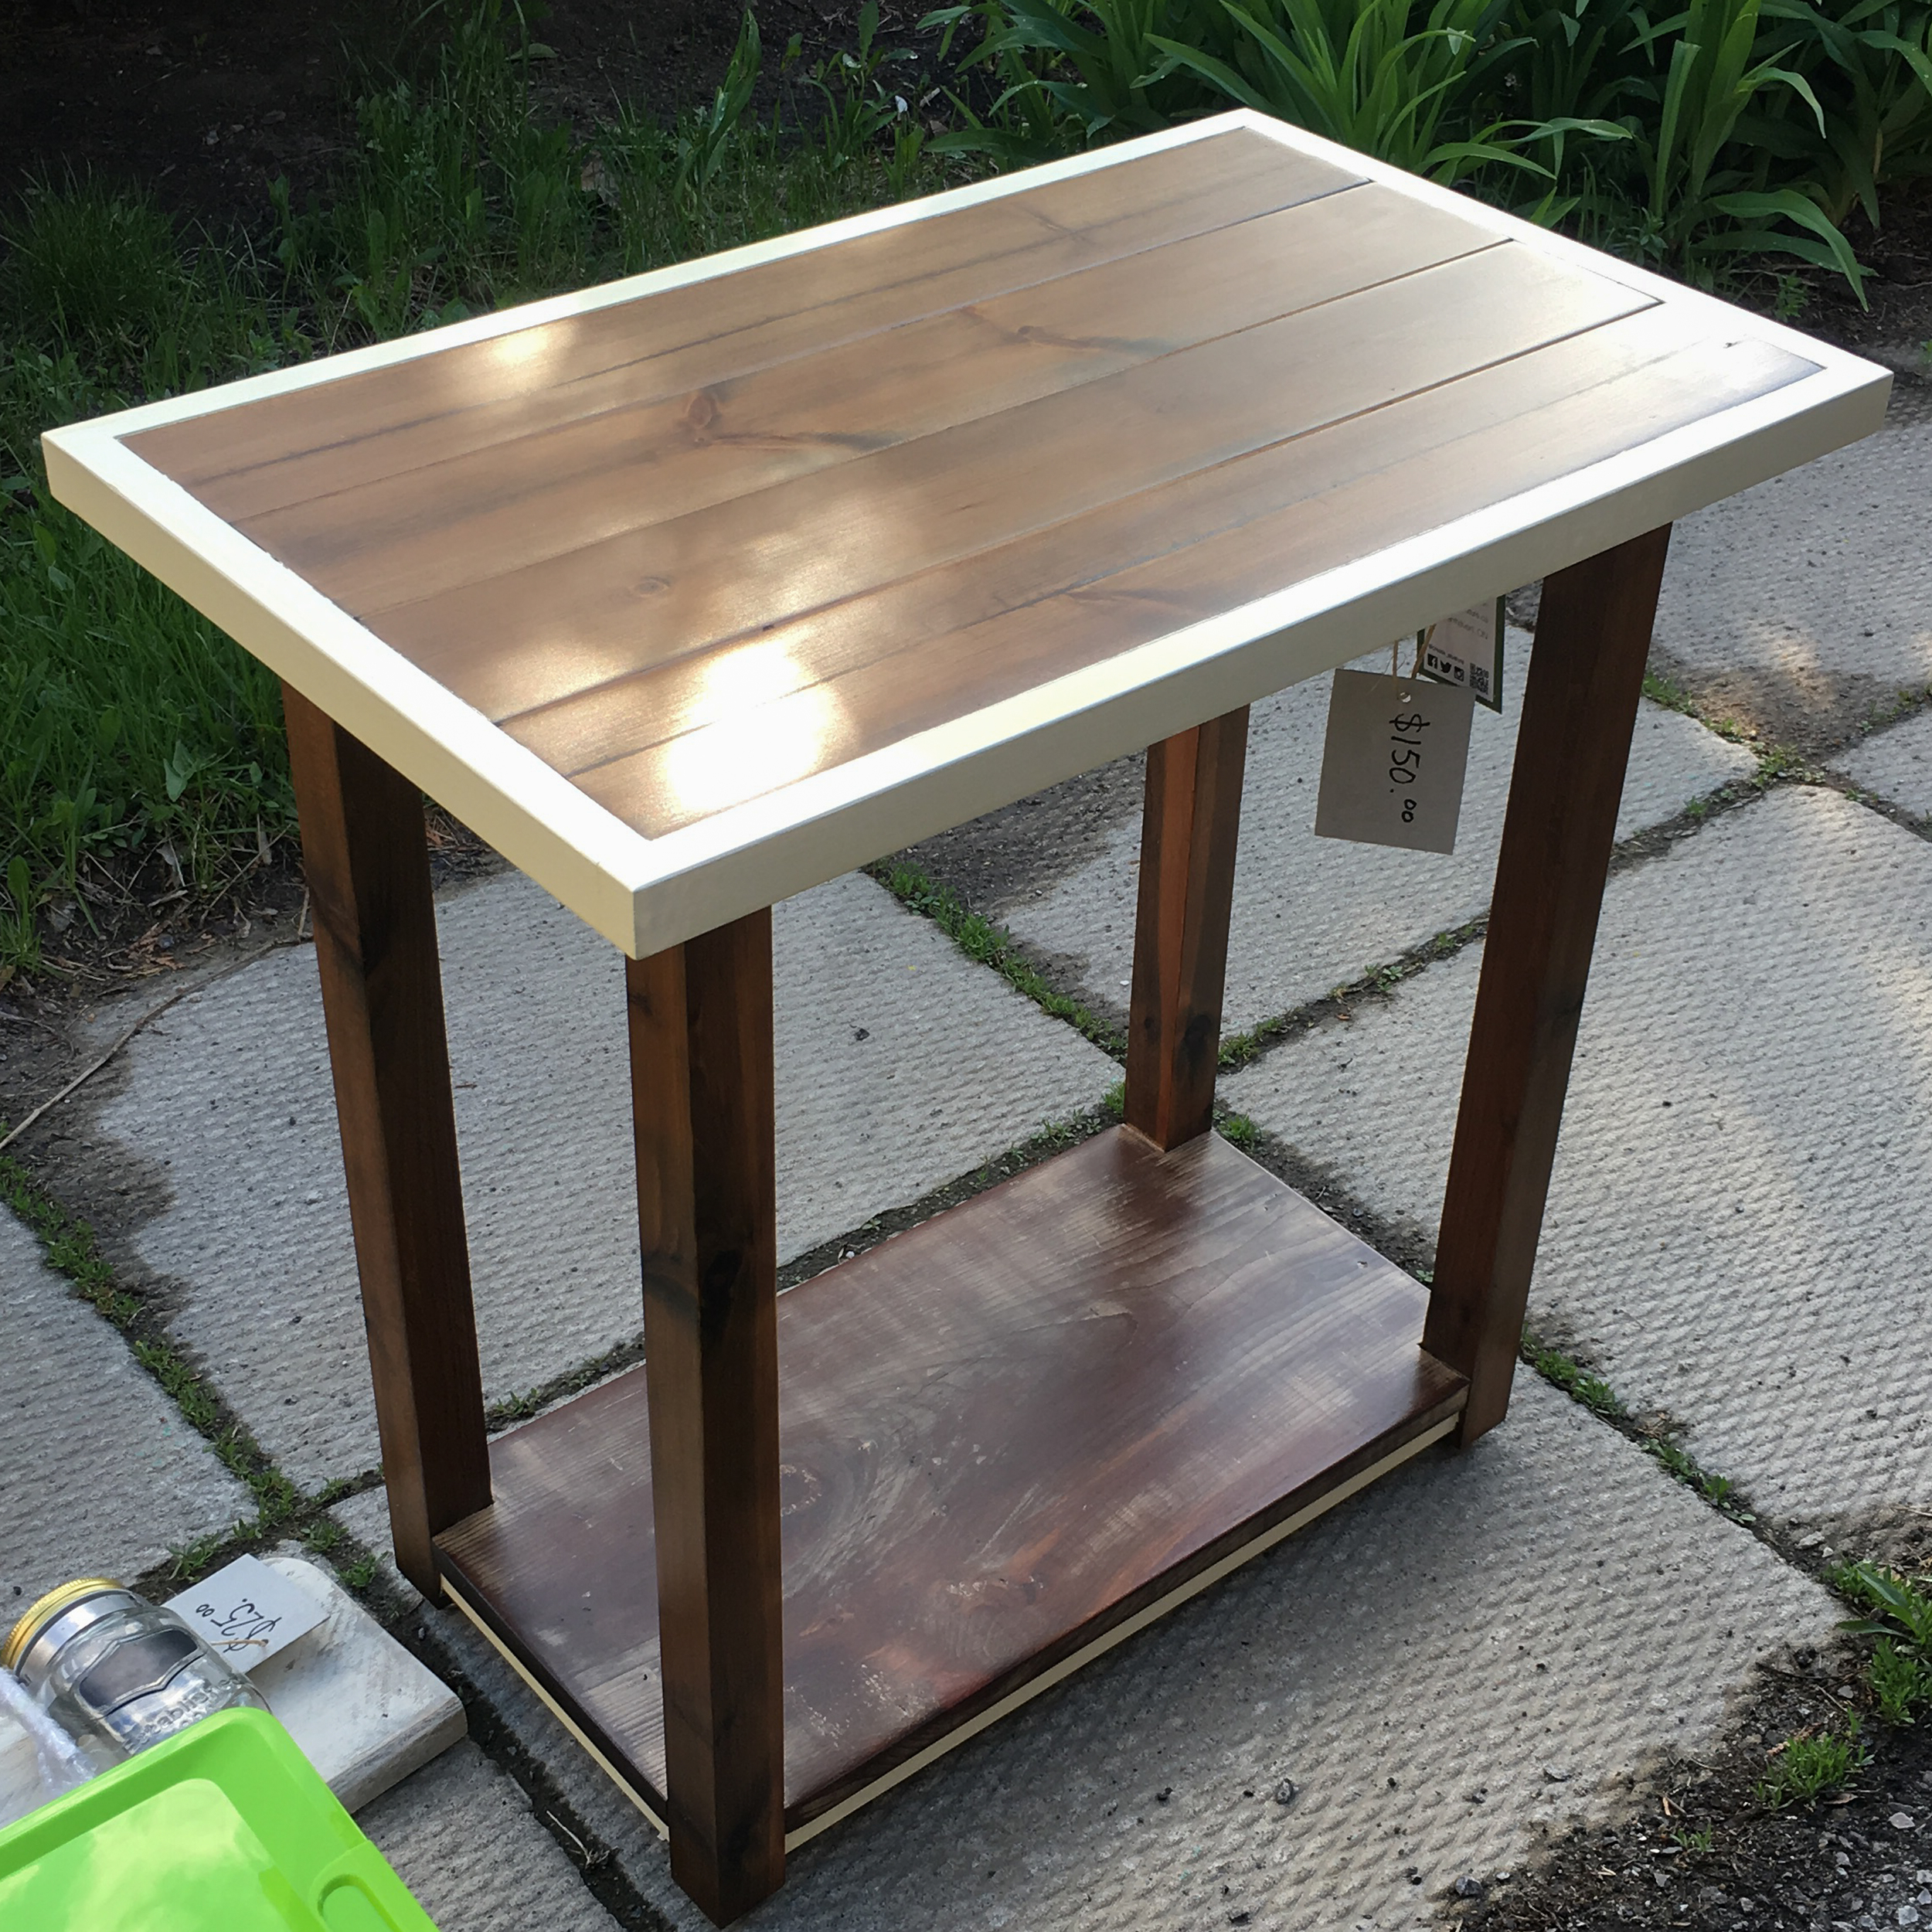 4 wood end table - $150